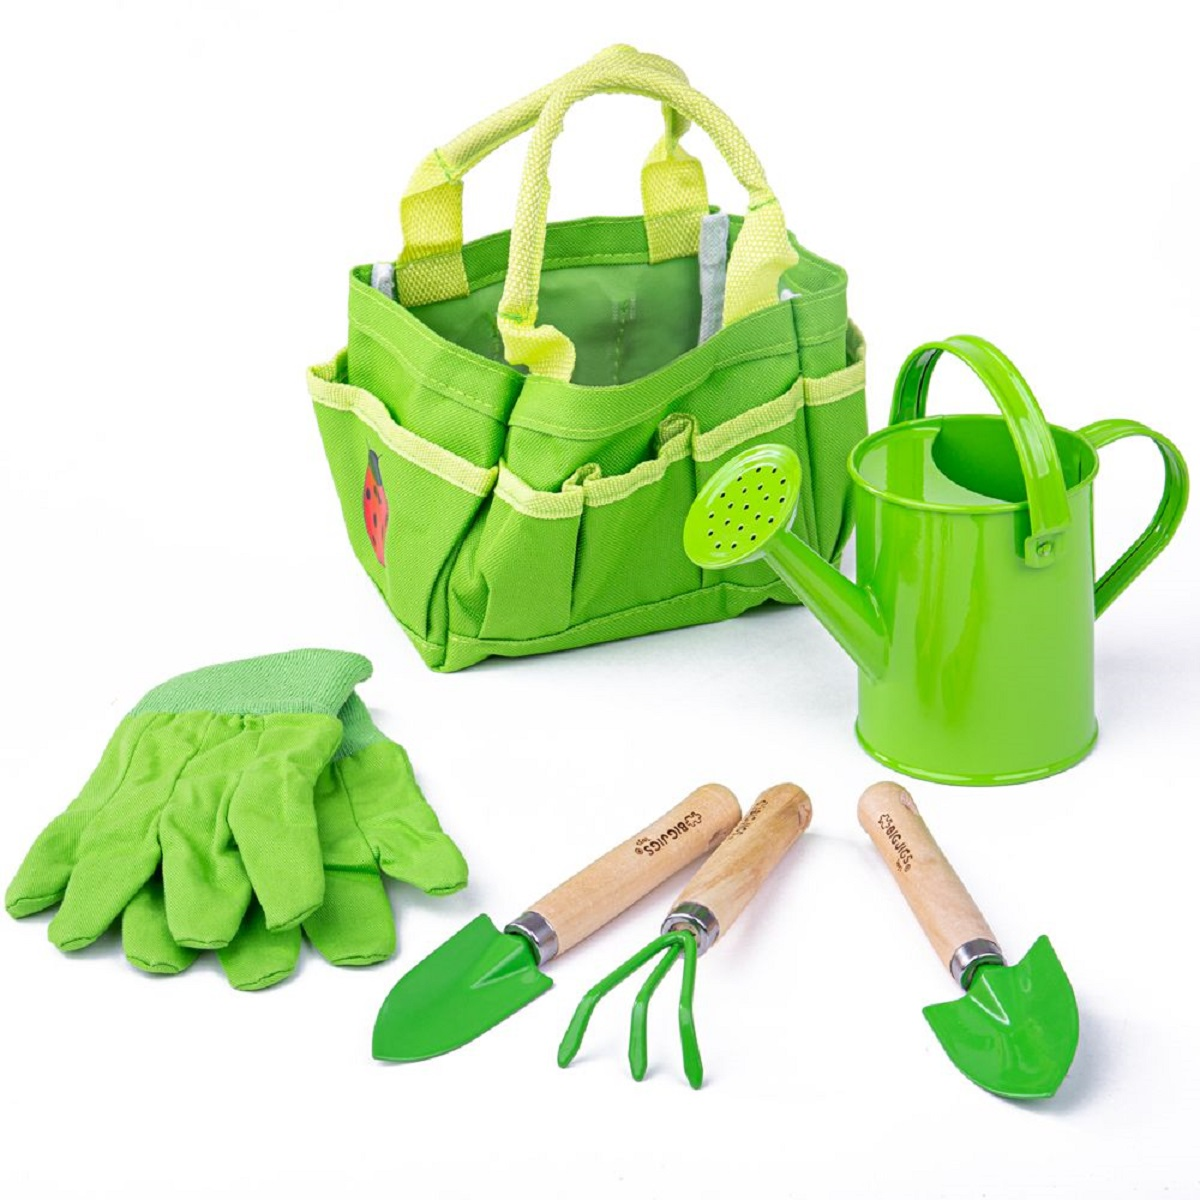 Childrens garden tools watering can kit gardening tools for Gardening tools 94 game